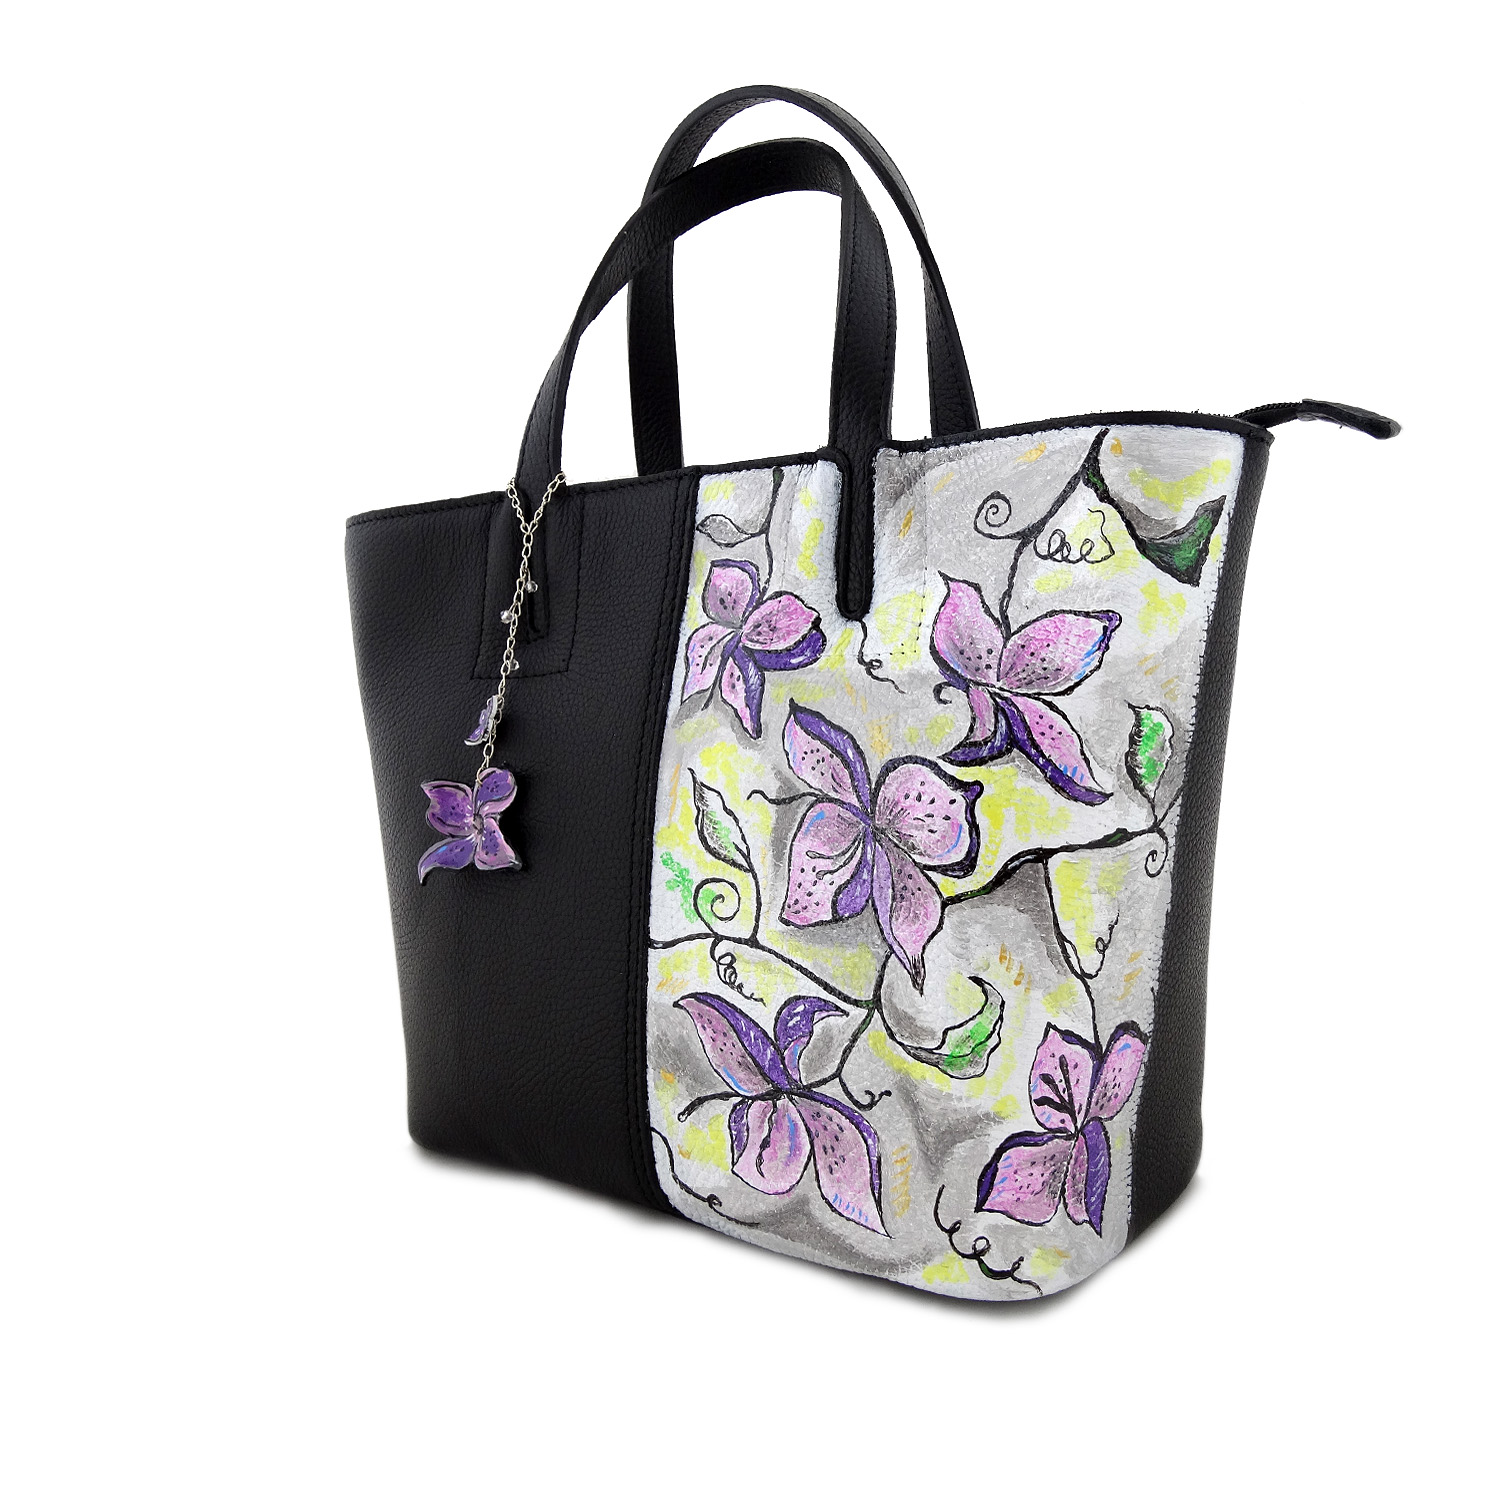 Borsa dipinta a mano – Fiori in color